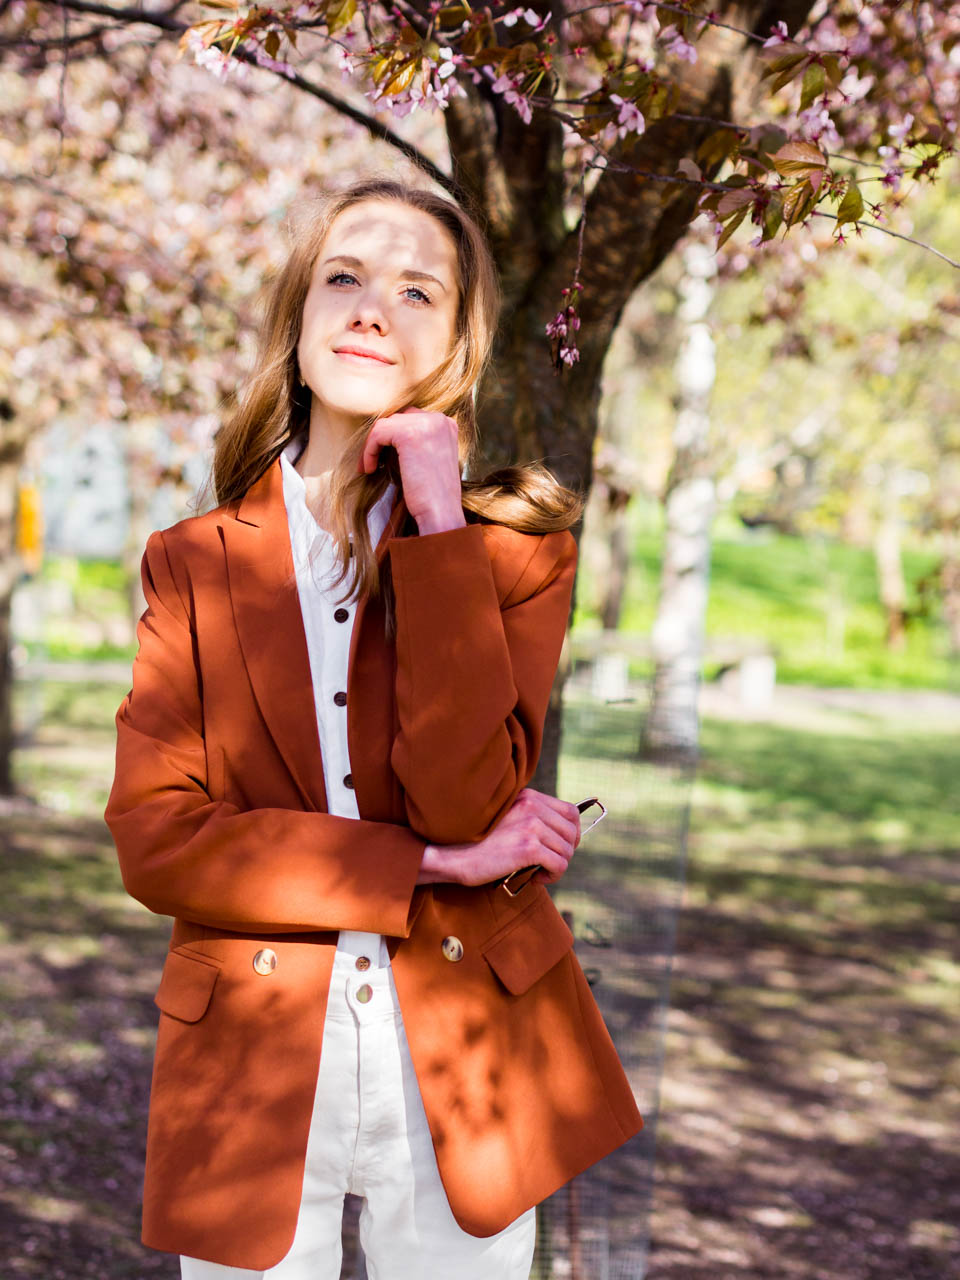 fashion-blogger-spring-outfit-inspiration-all-white-rust-blazer-and-goals-2019-check-in